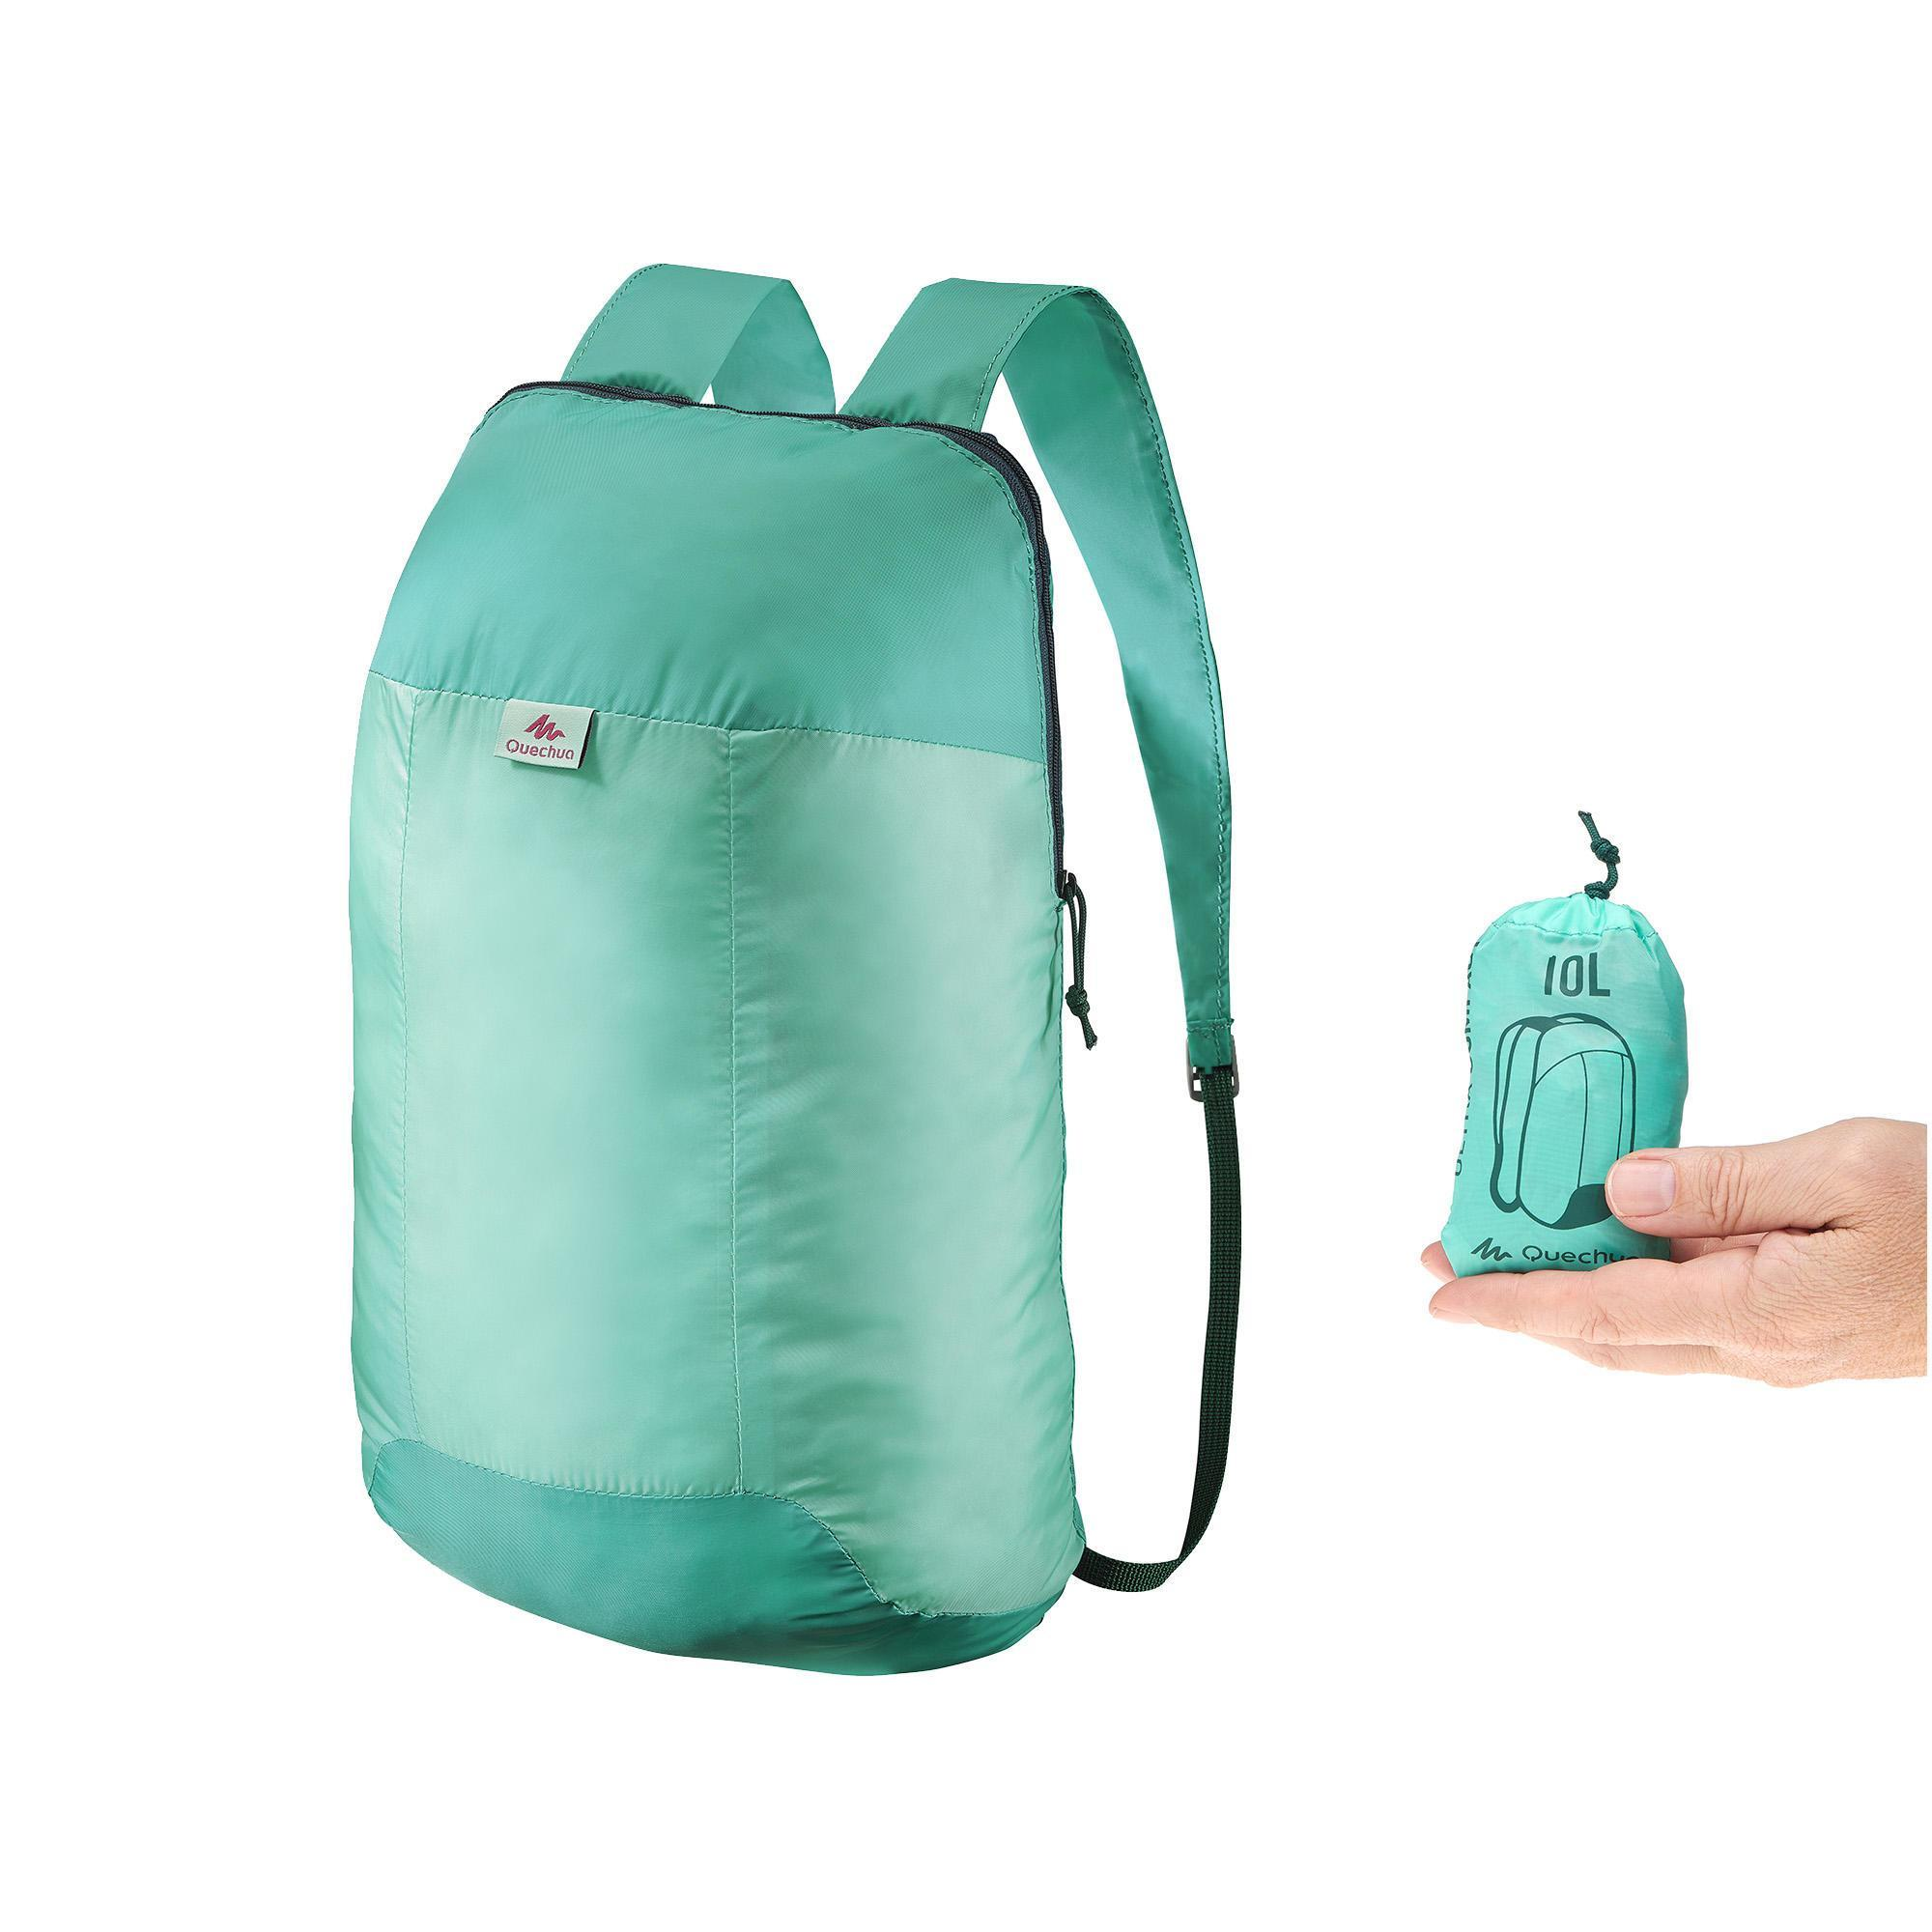 Ultra Compact Backpack 10 Litres